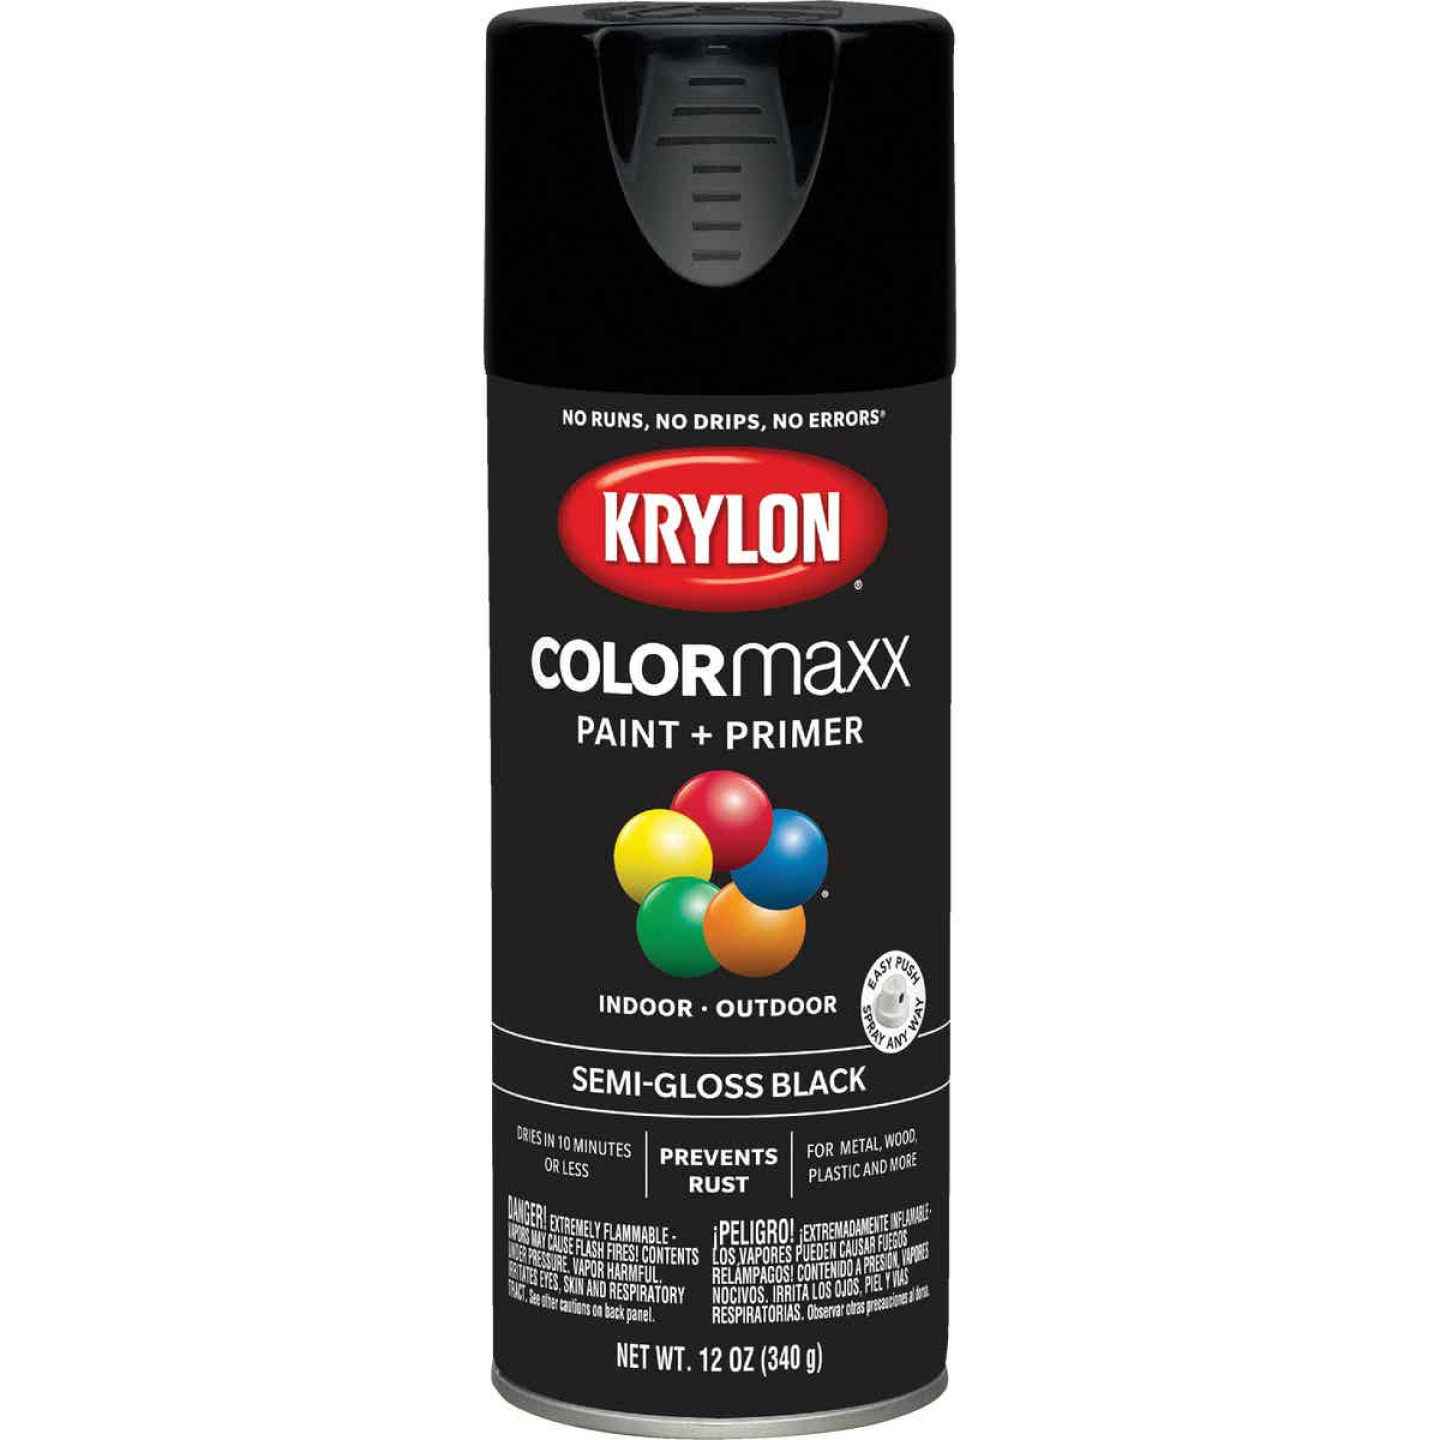 Krylon ColorMaxx 12 Oz. Semi-Gloss Spray Paint, Black Image 1